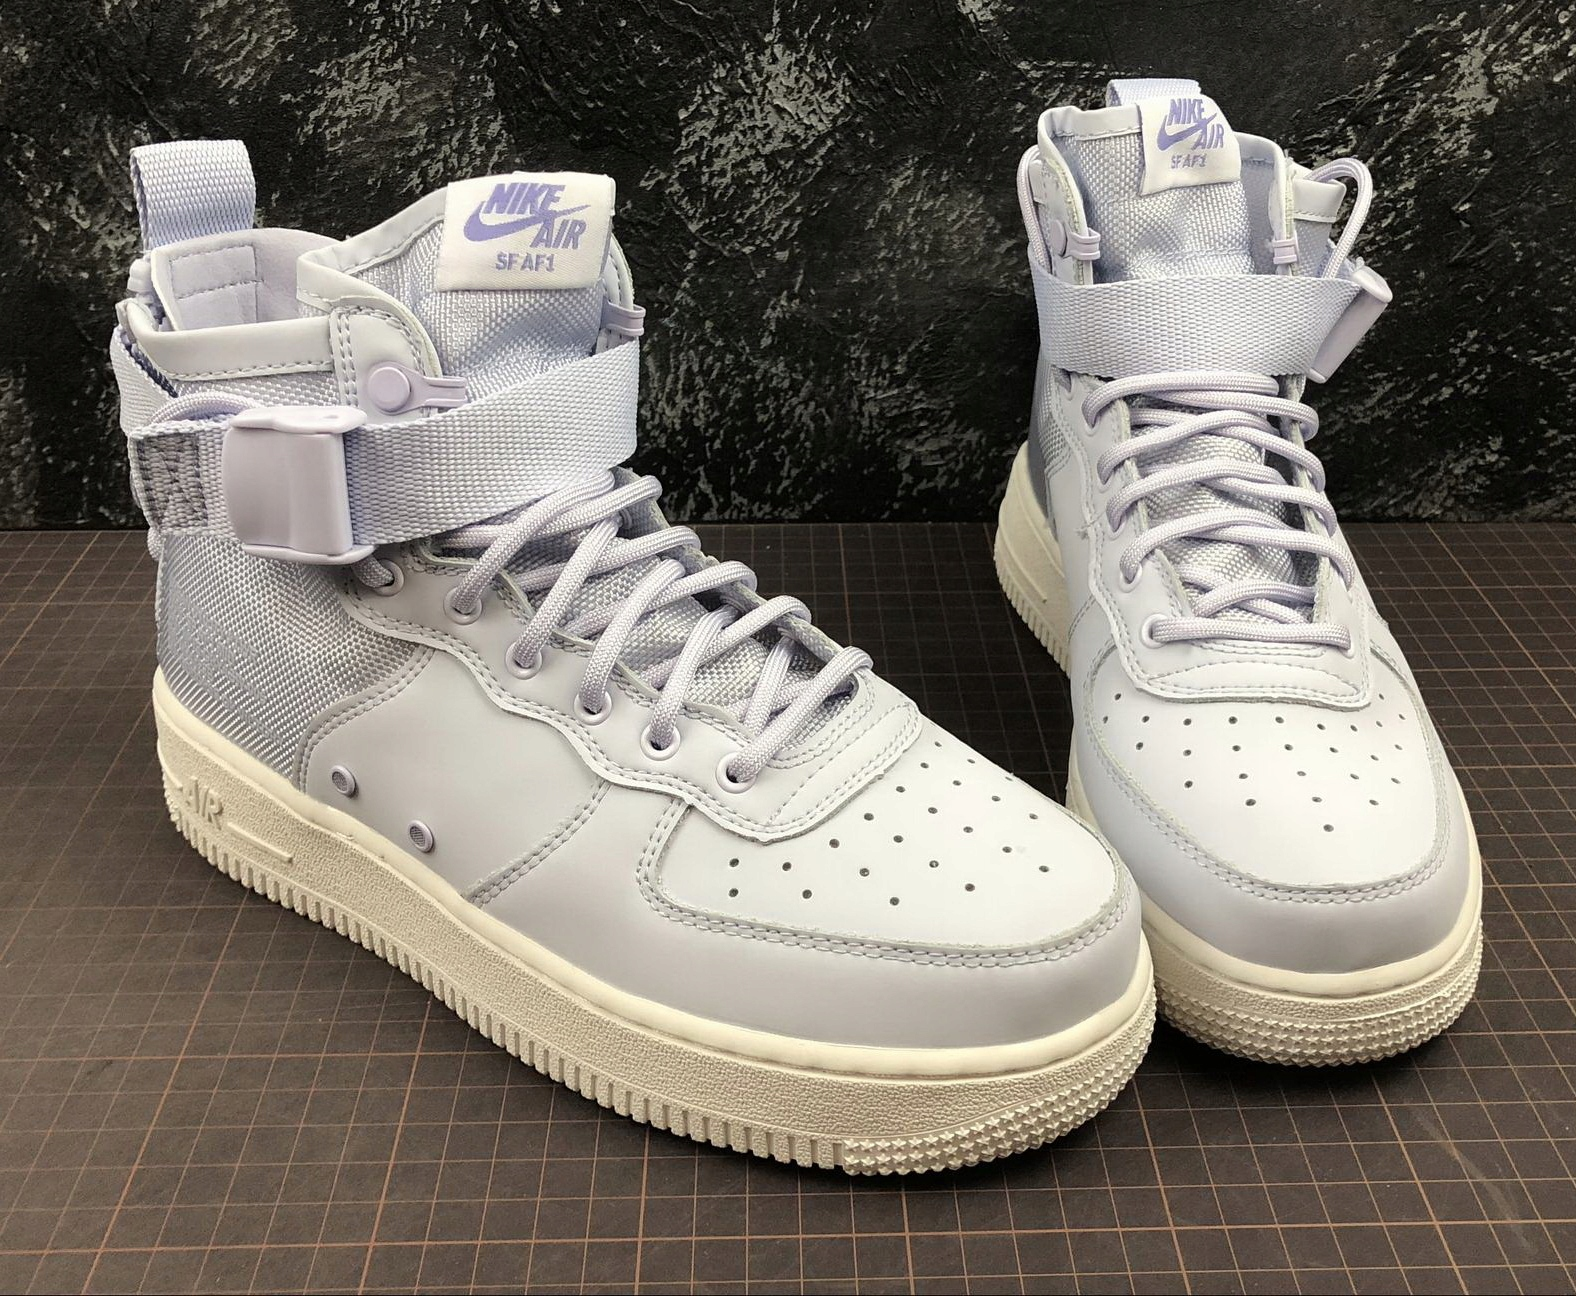 DAMSKIE NIKE SF AIR FORCE 1 MID r. 39 7926920918